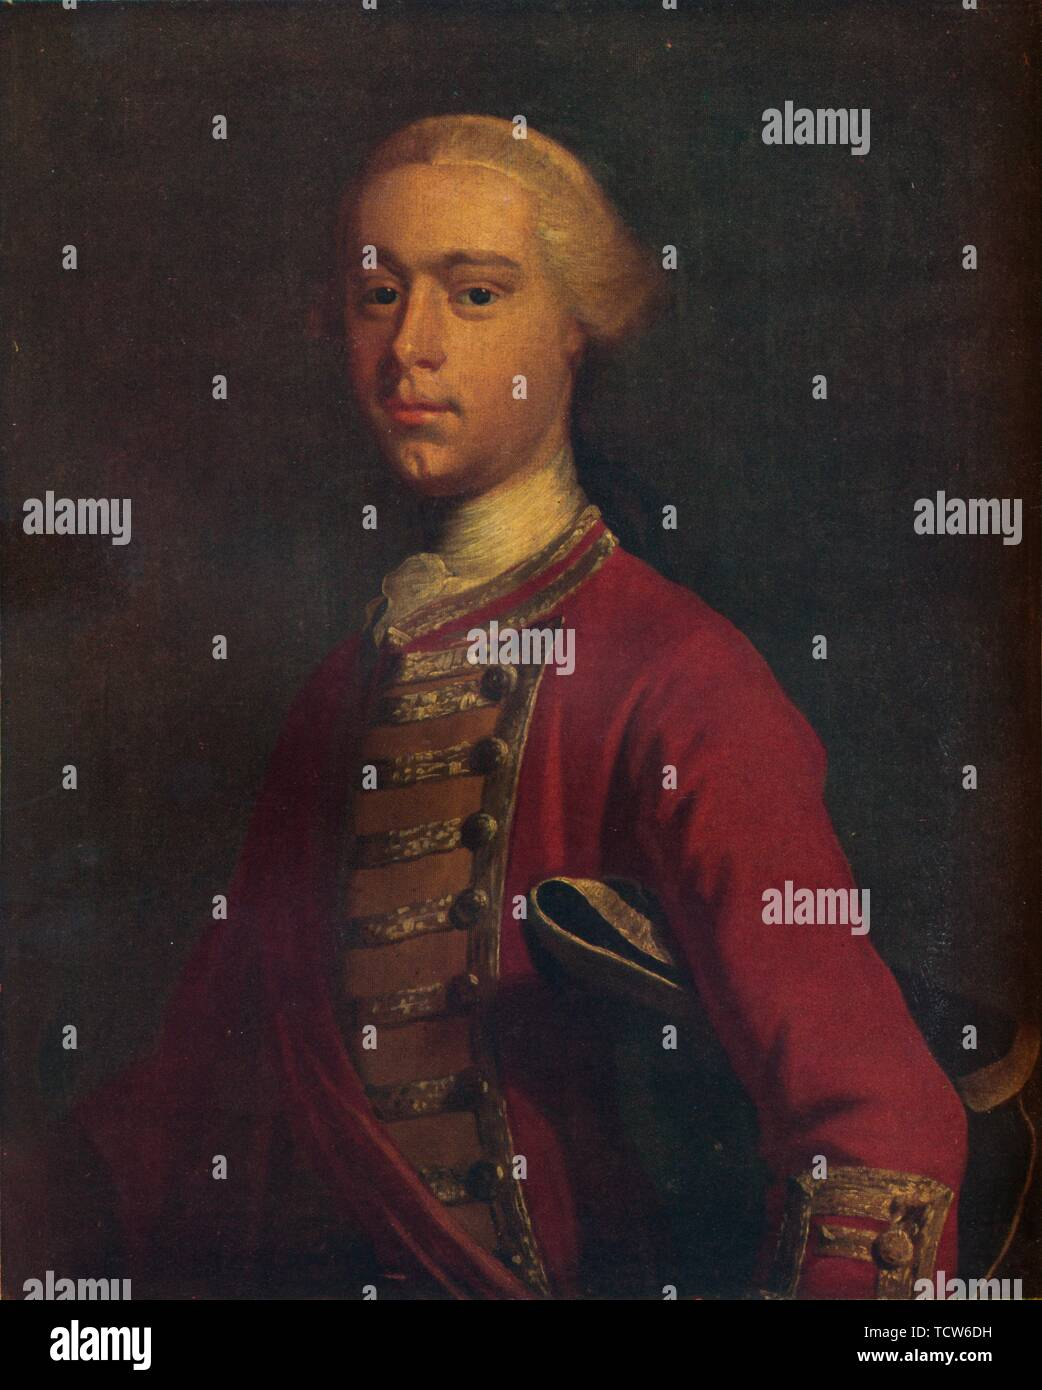 "'General James Wolfe (1727-1759) as a Young Man', 19th century, (1930). Portrait of British Army officer James Wolfe who died during the successful battle to take Quebec from the French in 1759 during the Seven Years War. Painting in the National Trust collection at Quebec House, Westerham, Kent. From ""The Connoisseur"", Volume 86, edited by C. Reginald Grundy. [The Connoisseur Ltd, London, 1930] - Stock Image"